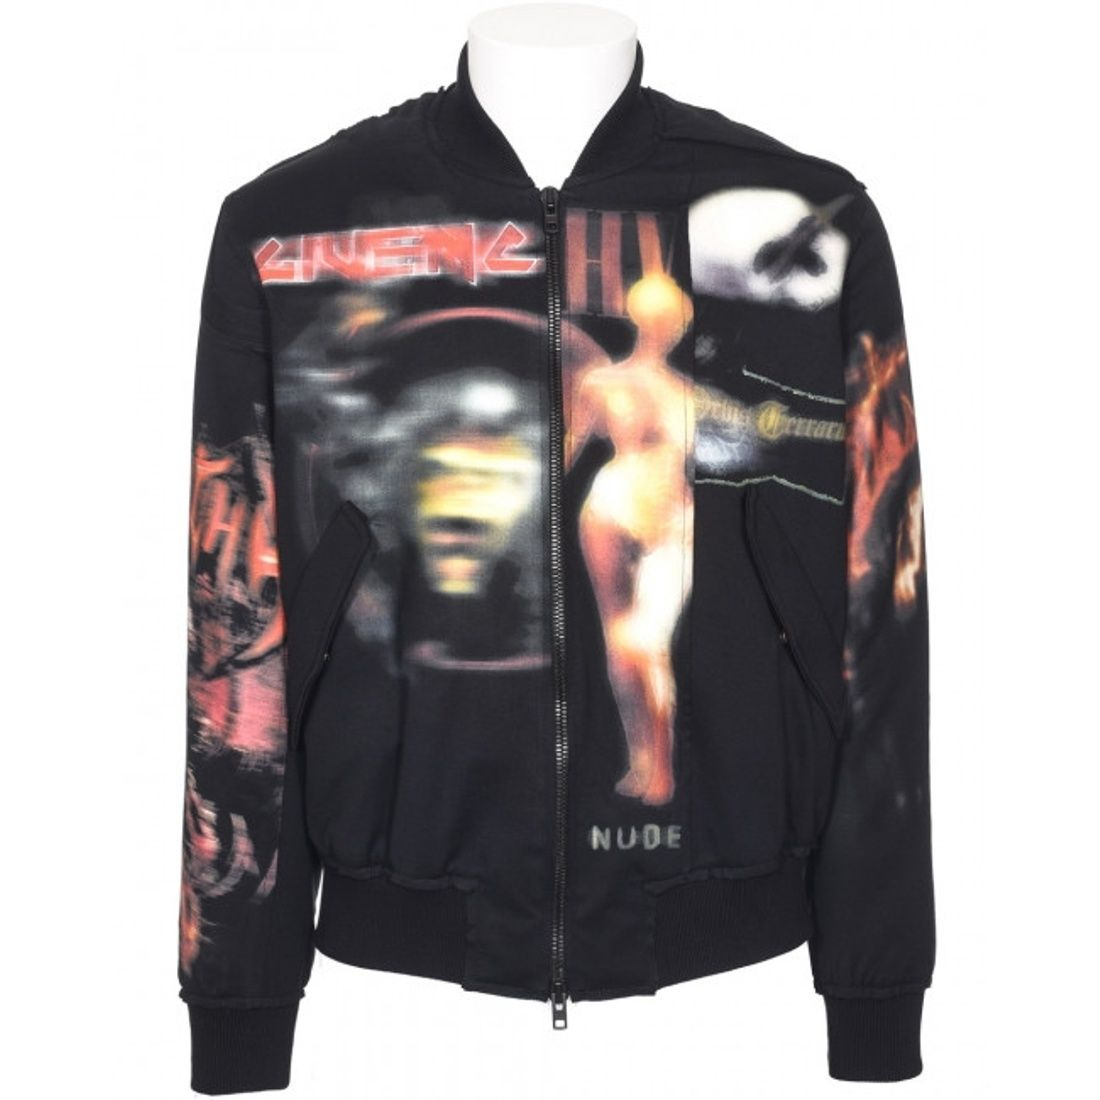 Givenchy Heavy Metal Cotton Bomber Jacket Size S 1620 Grailed Printed Bomber Givenchy Clothing Heavy Metal [ 1100 x 1100 Pixel ]